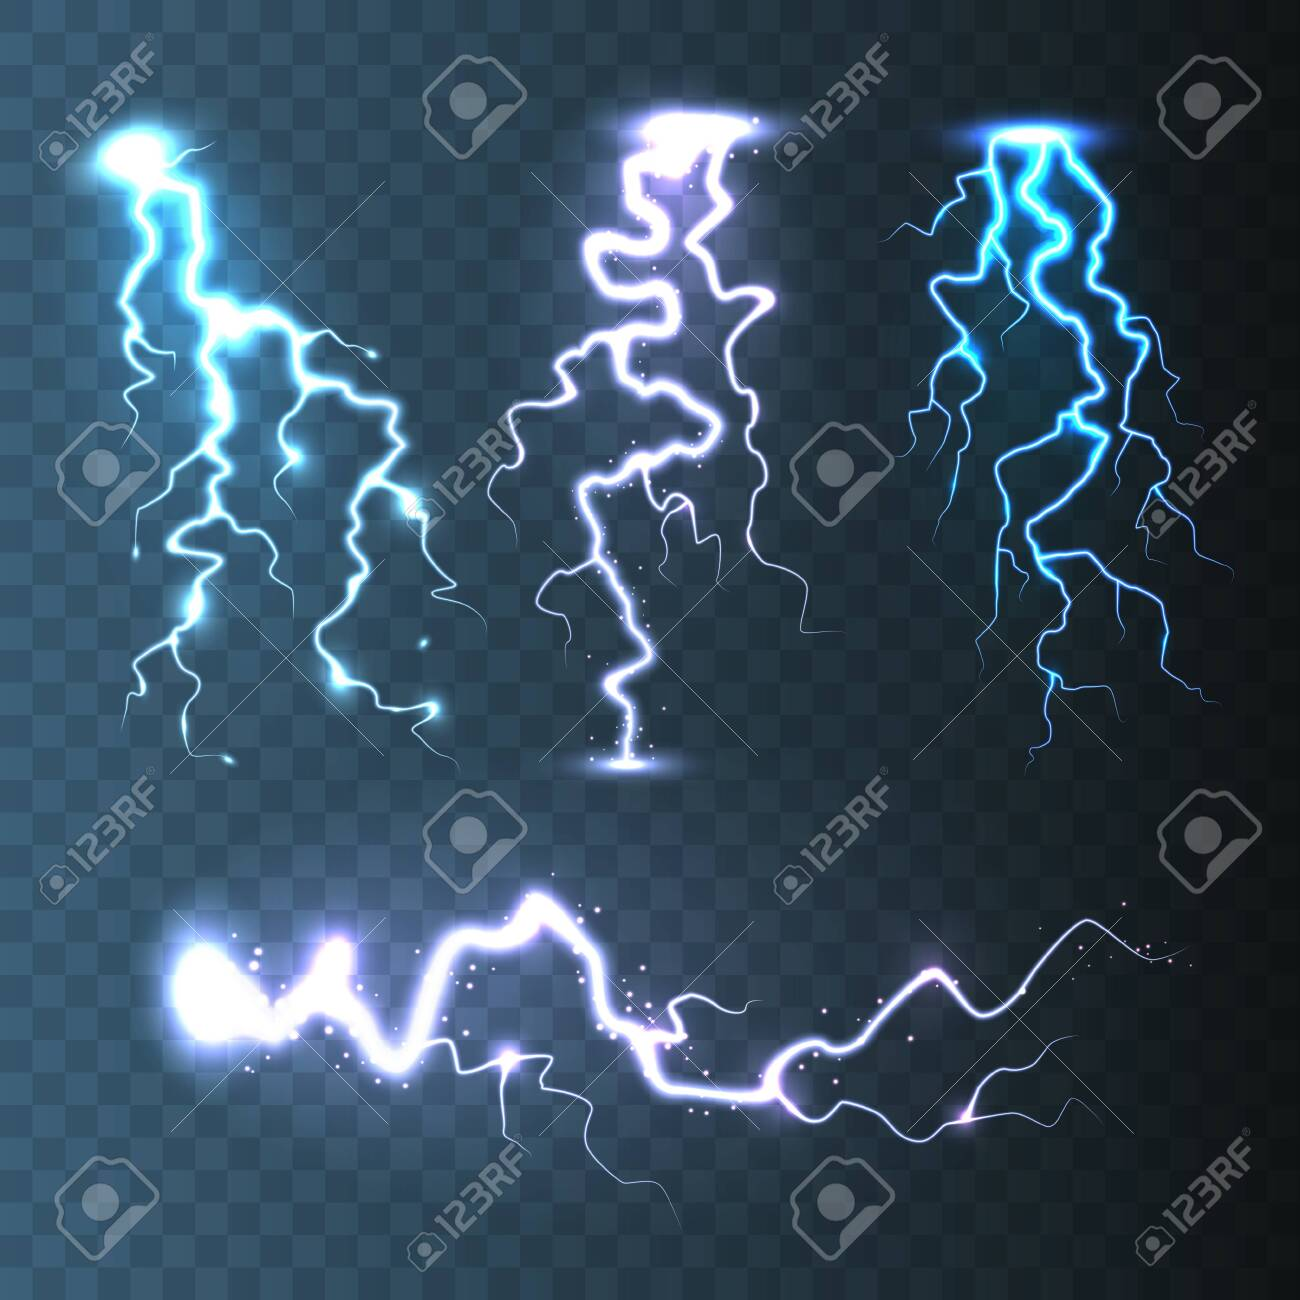 Realistic Lightning Collection On Blue Transparent Background Royalty Free Cliparts Vectors And Stock Illustration Image 133383905